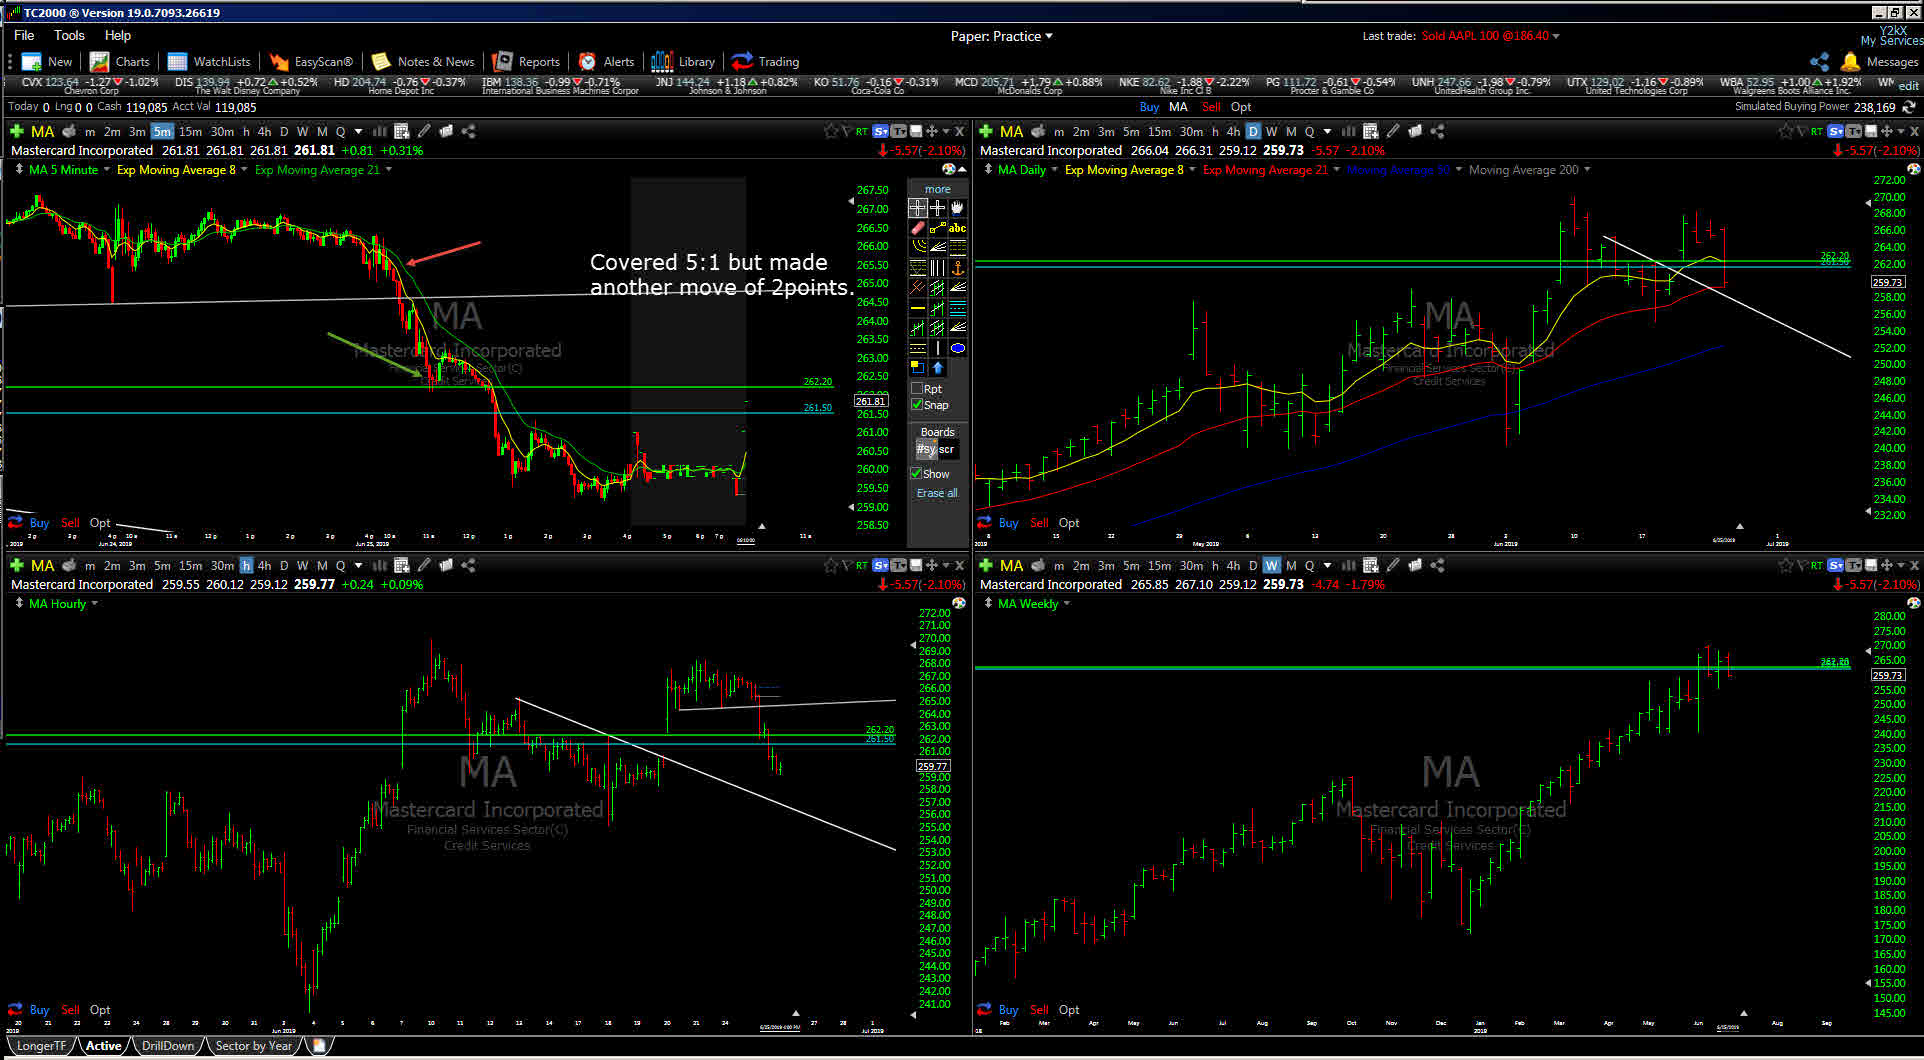 Playbook Trading chart